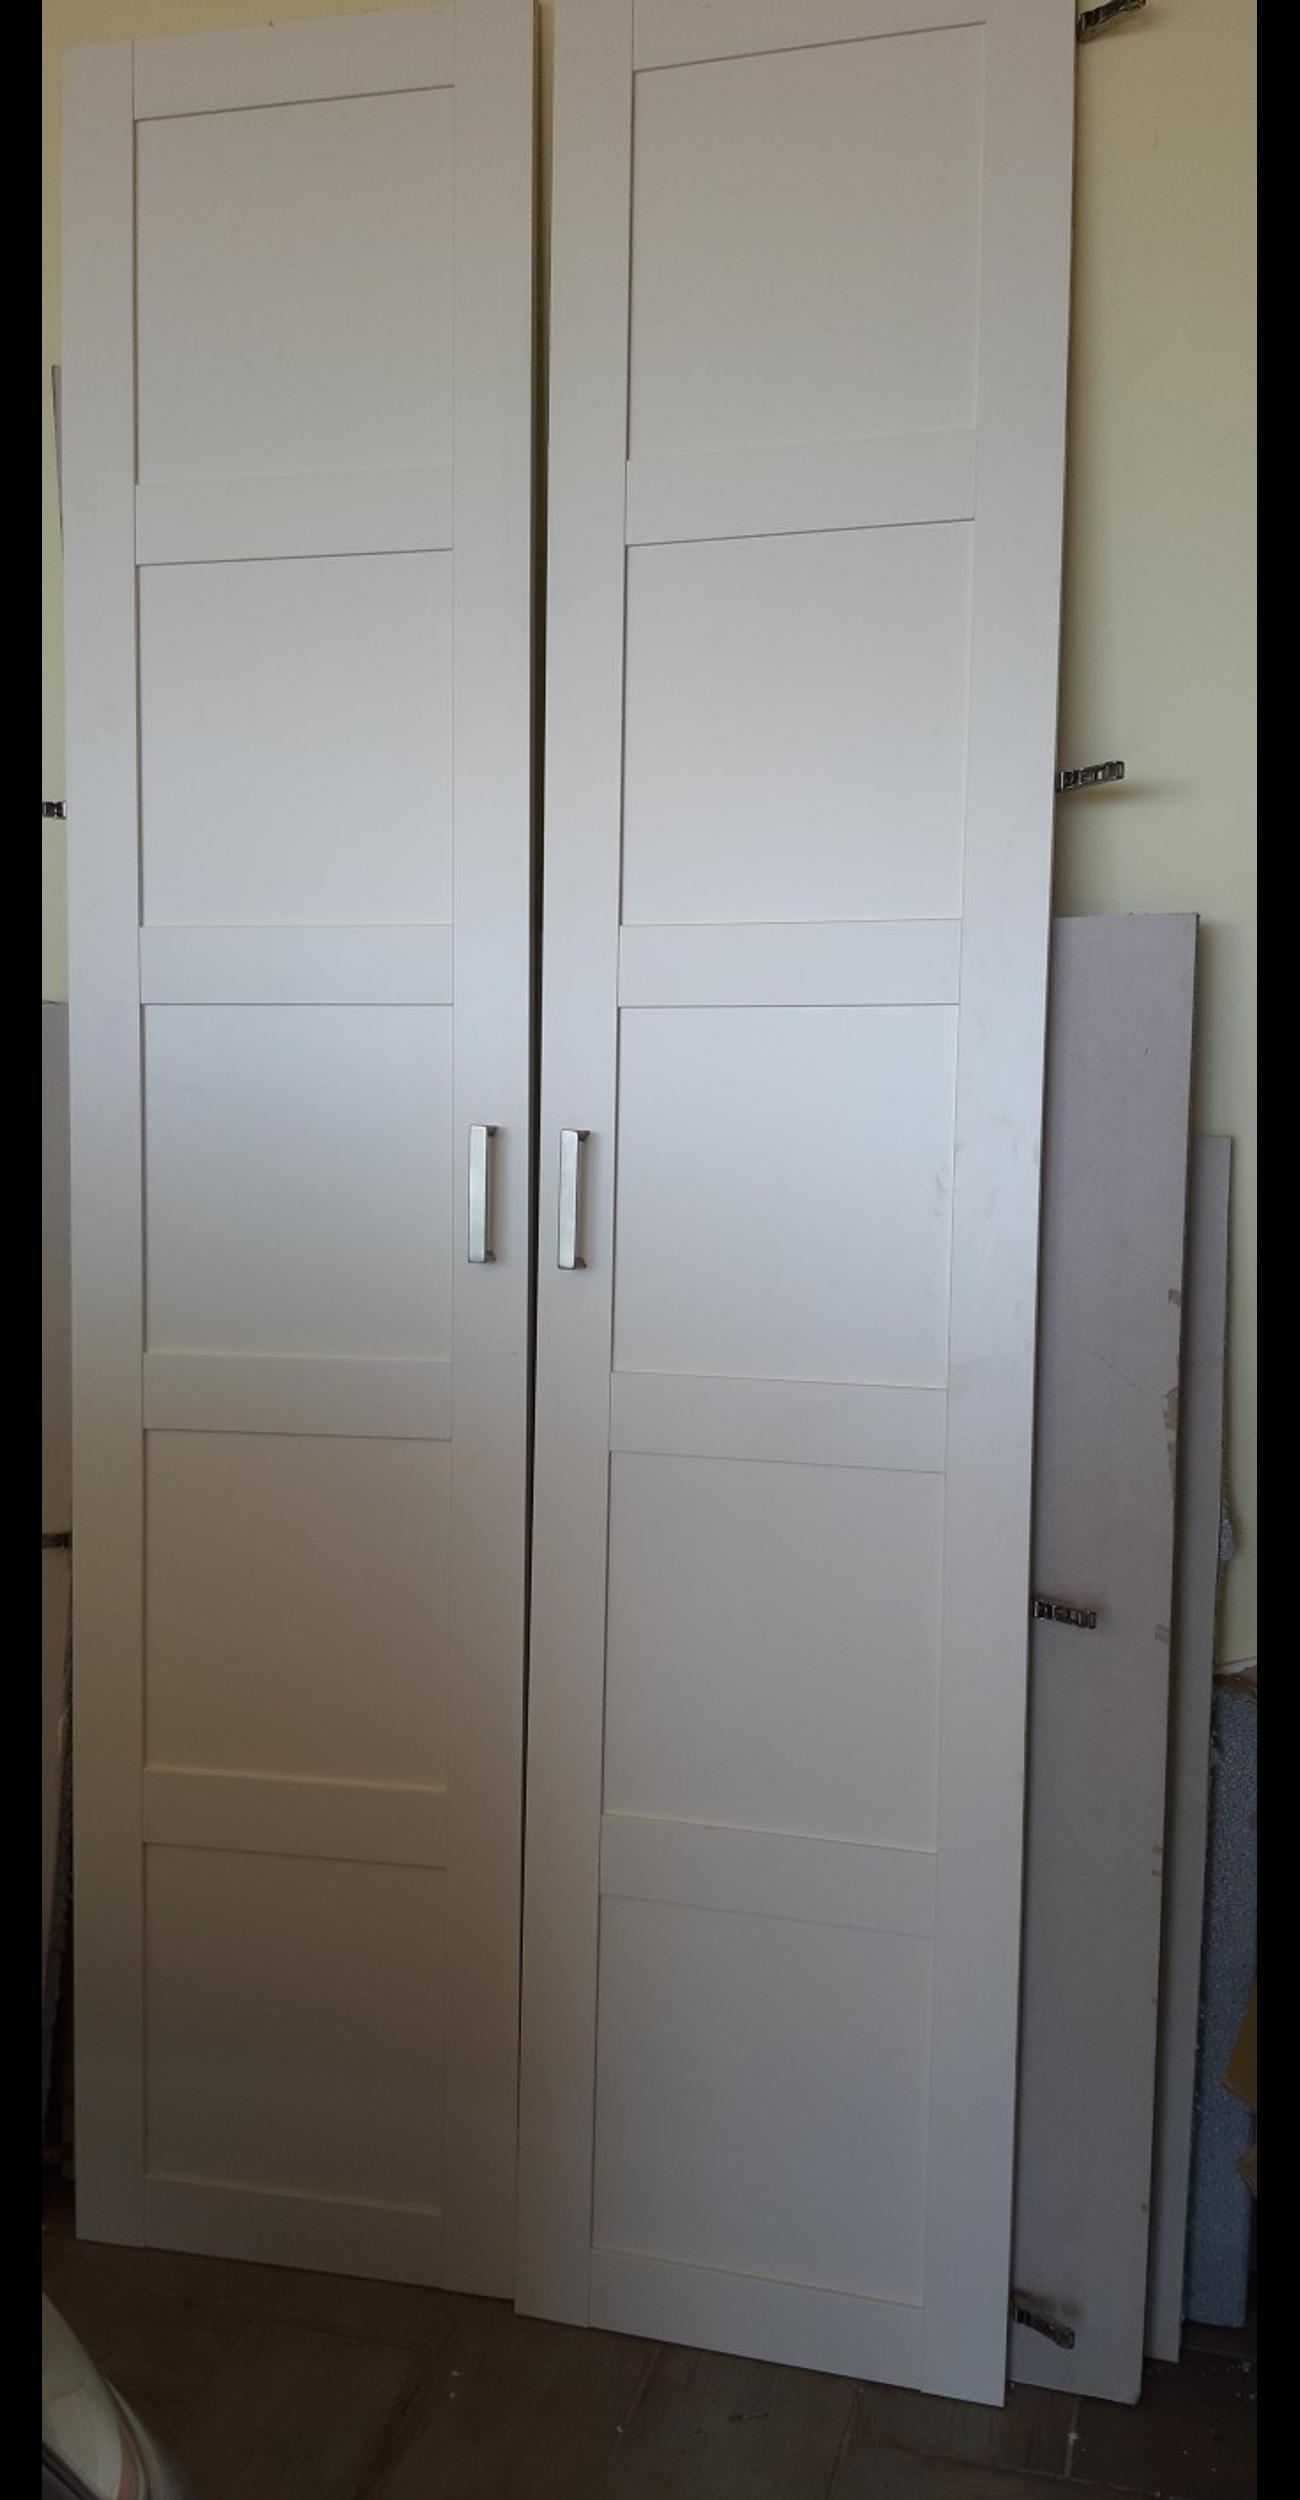 Ikea Armadio Due Ante.Ante Ikea Pax In Marsicovetere For 40 00 For Sale Shpock